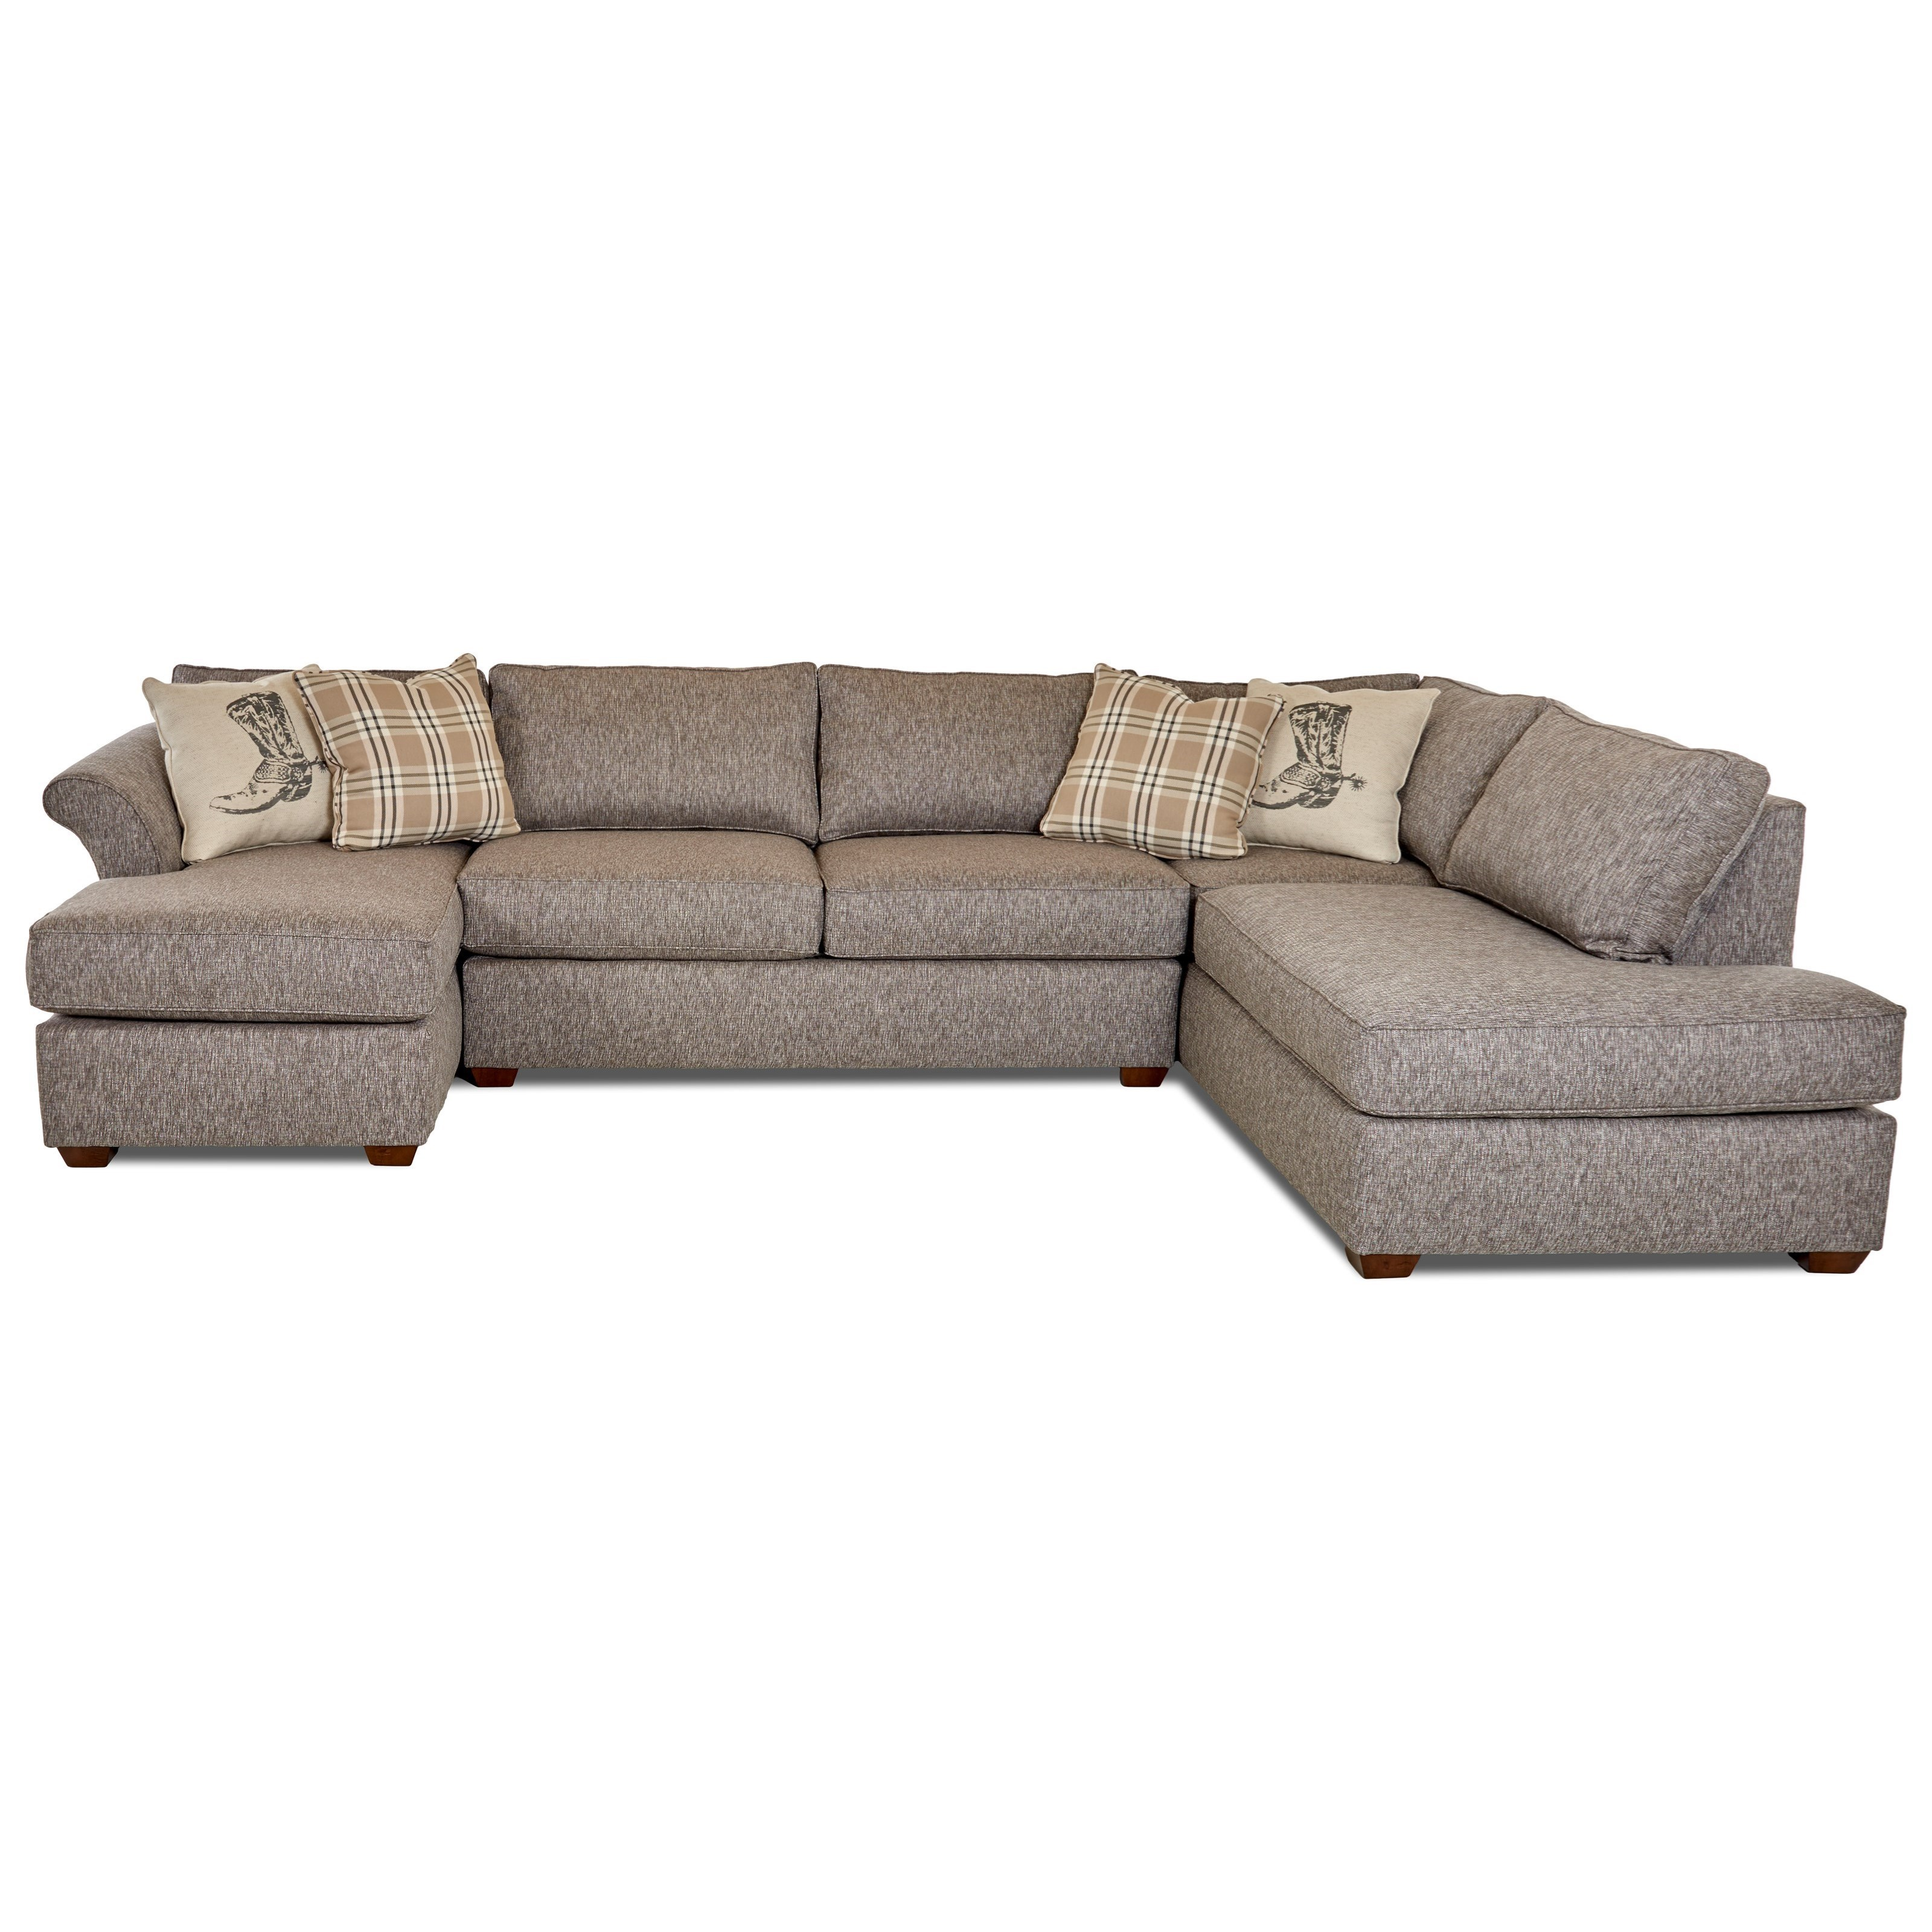 klaussner jaxon three piece sectional sofa with flared arms and raf sofa chaise darvin furniture sectional sofas